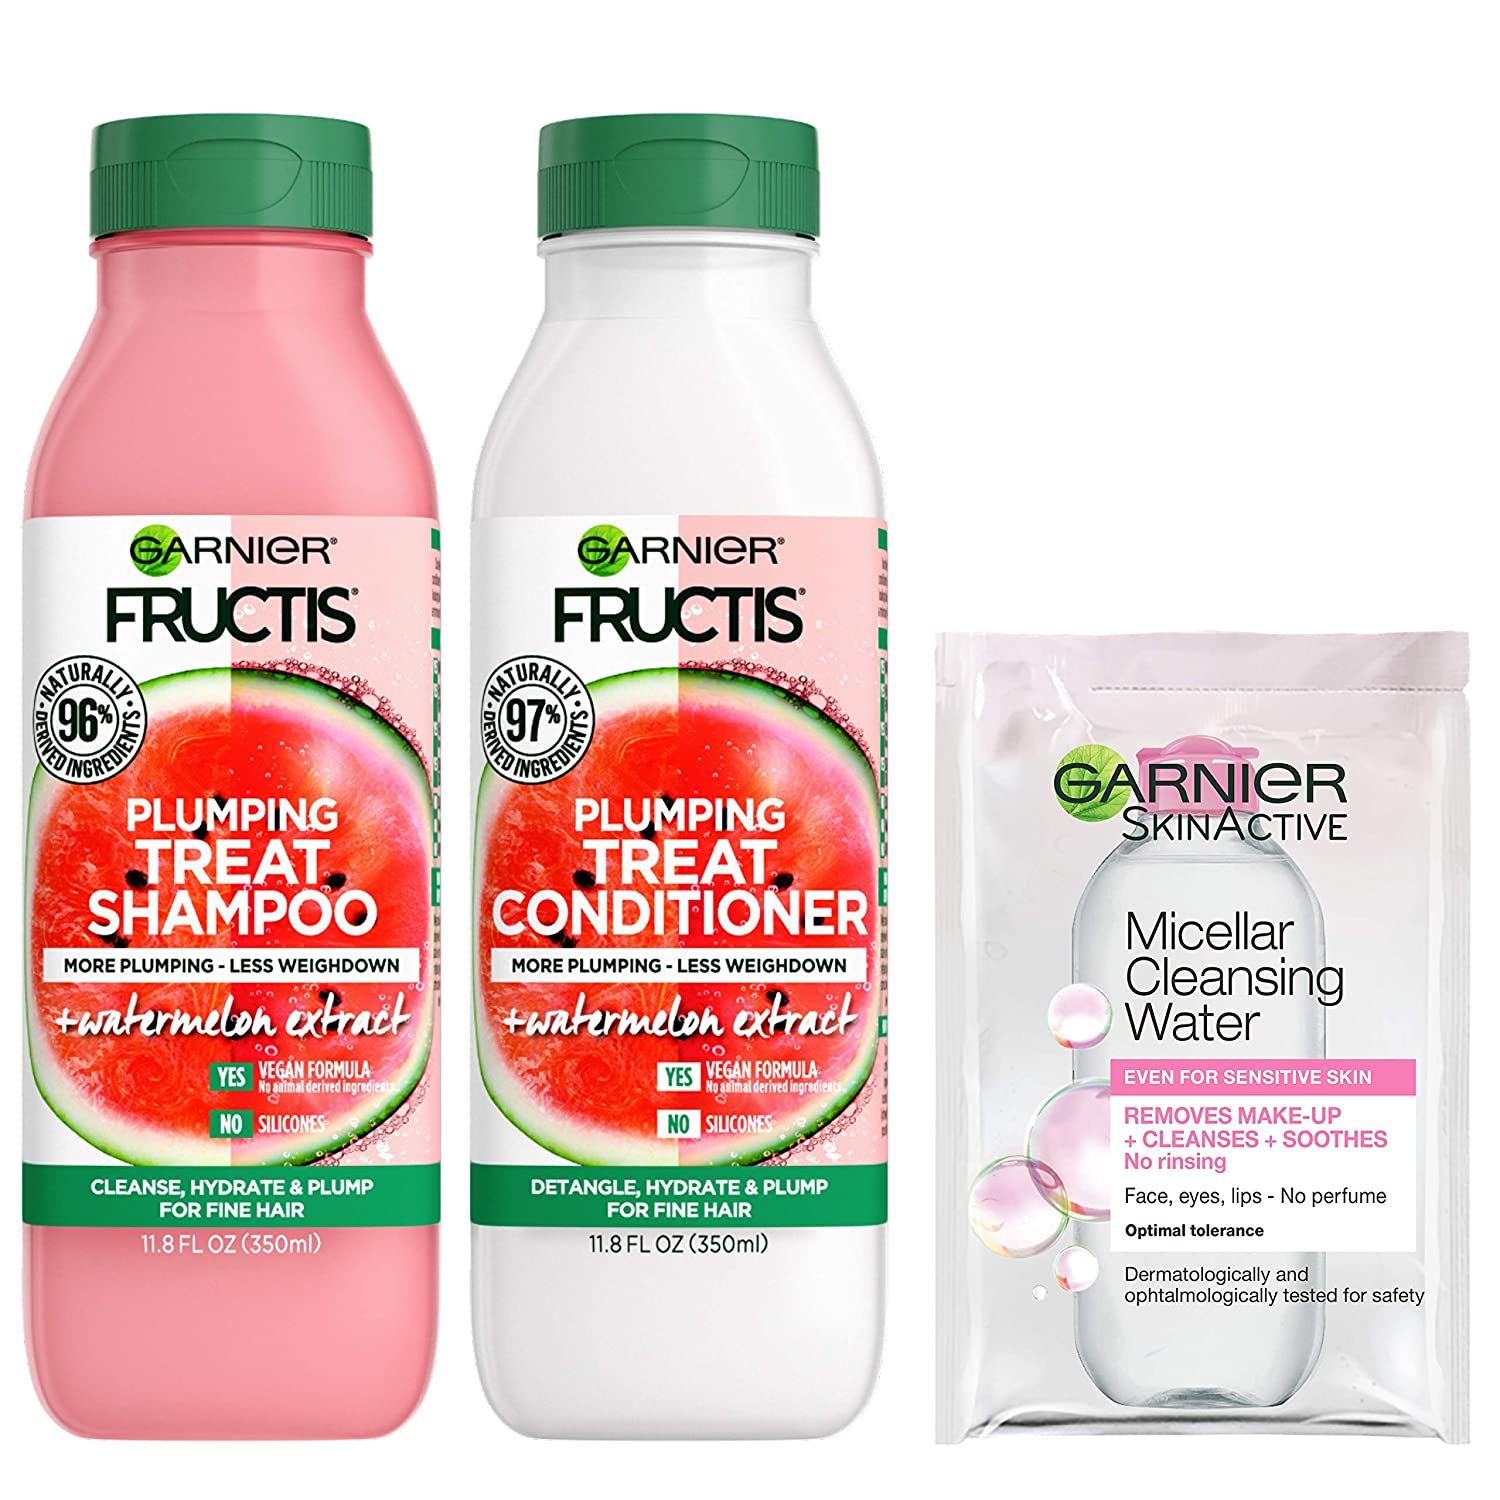 Garnier Fructis Plumping Treat Shampoo and Conditioner, 98 Percent Naturally Derived Ingredients, Watermelon, Plump Flat Hair, 11.8 oz ea, w/Micellar Sample (Packaging May Vary)